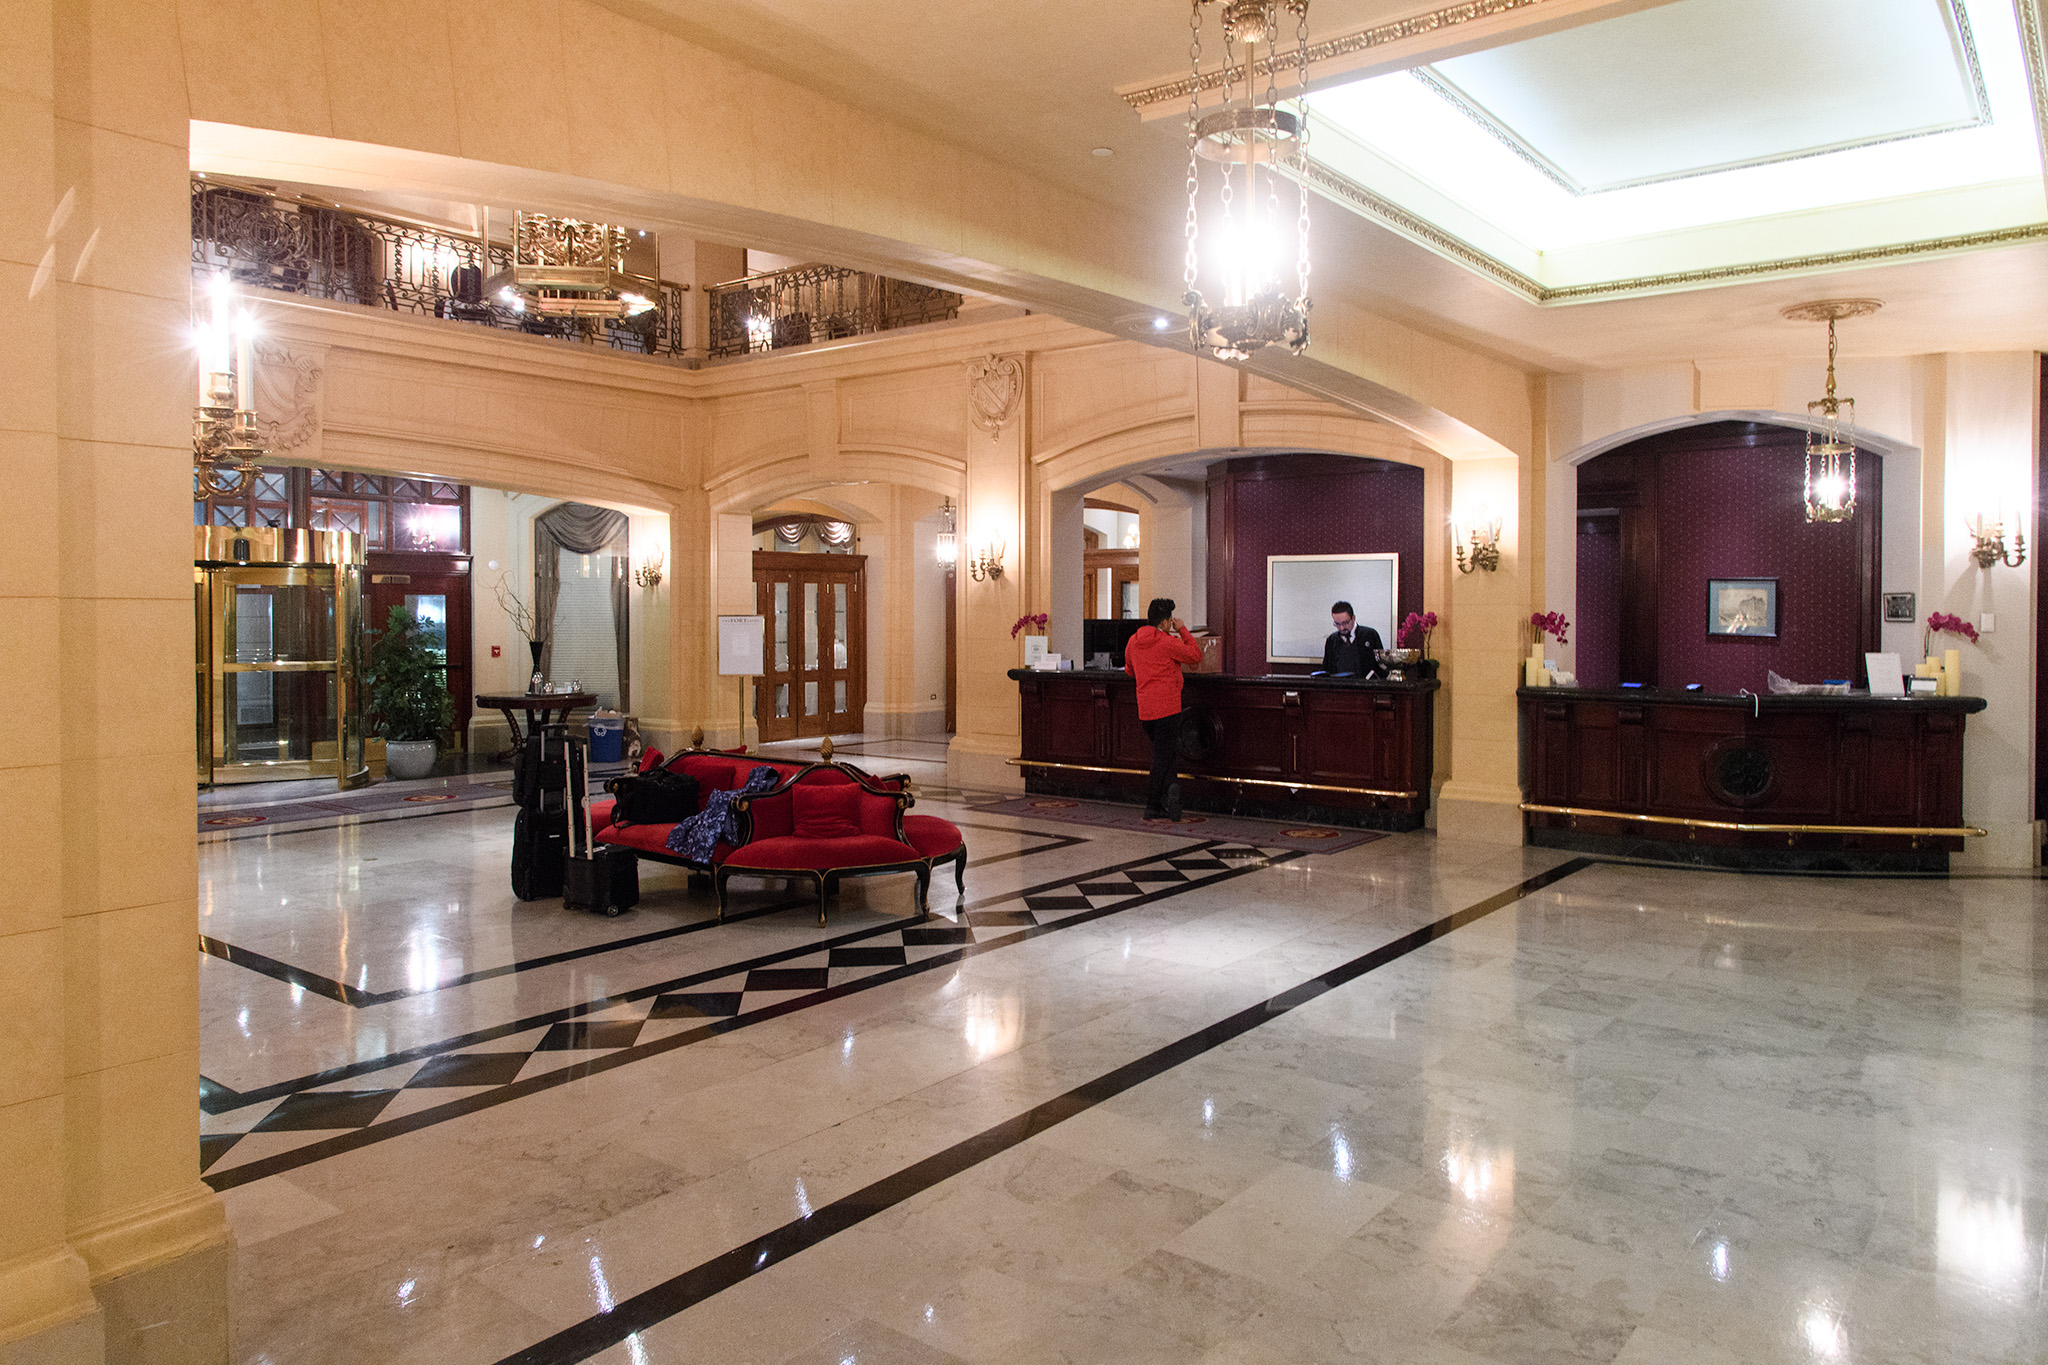 The Lobby of the Ft Garry Hotel